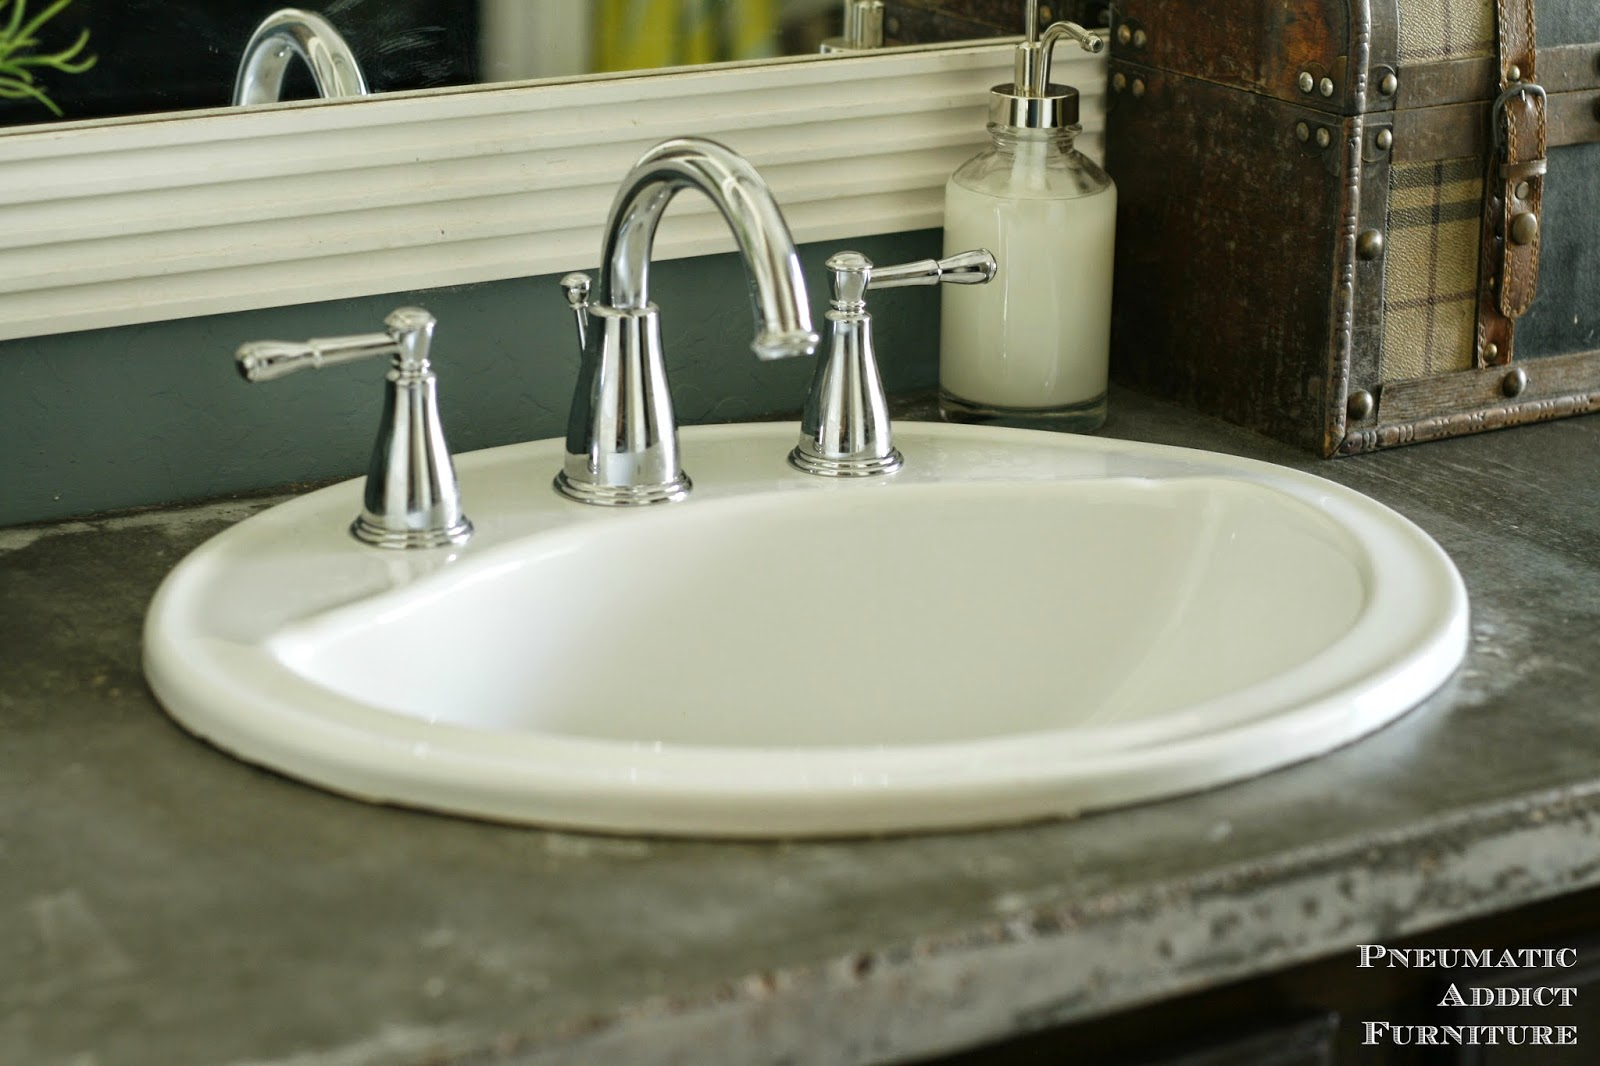 Countertop Sink : Pneumatic Addict : DIY Concrete Countertop With Sink Openings